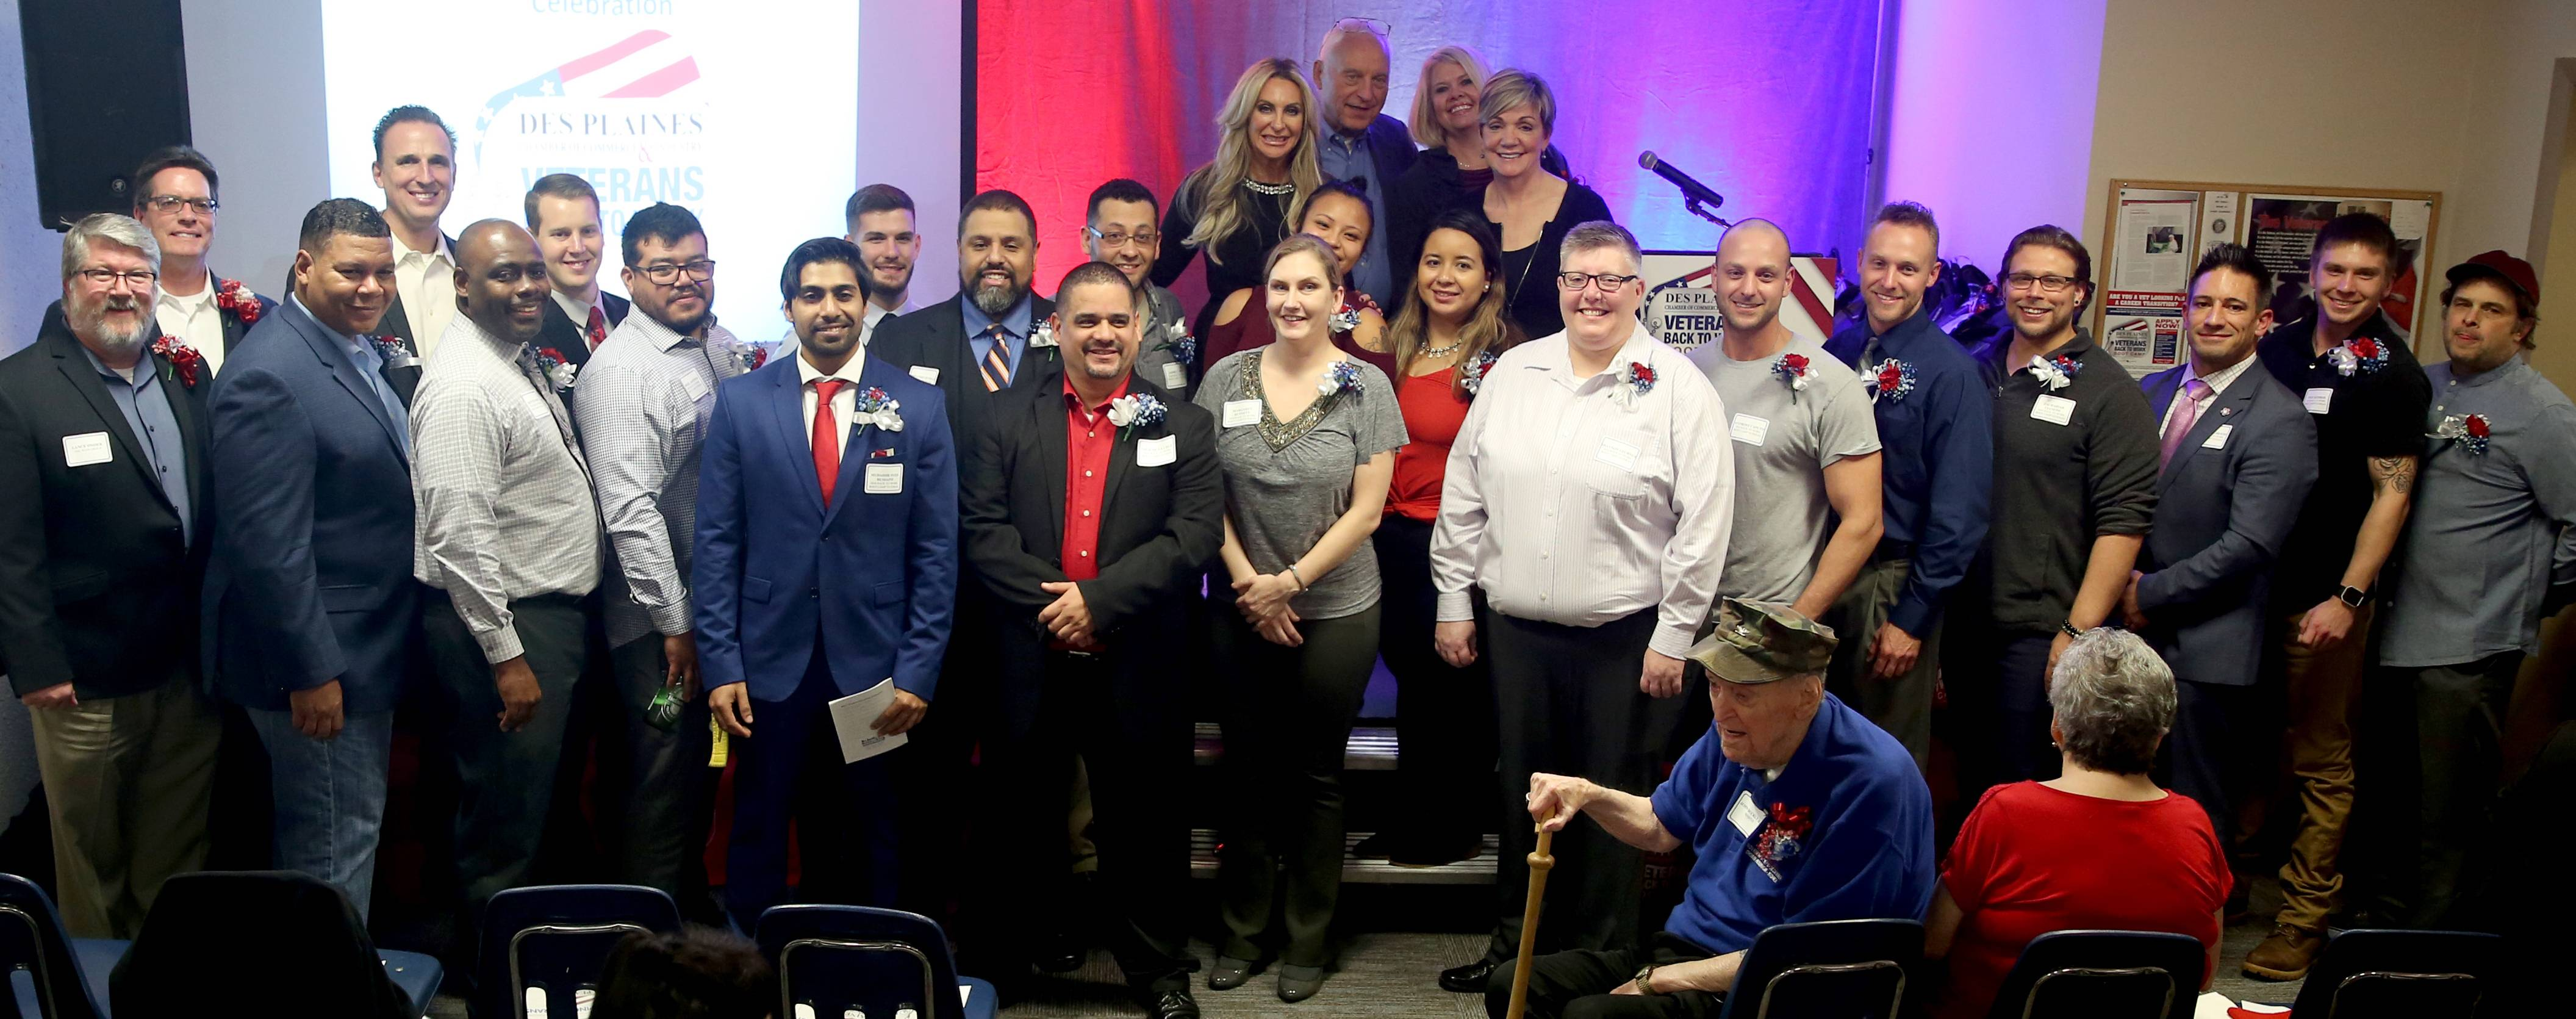 Graduates and distinguished guests pose for a group photo during the Des Plaines Chamber of Commerce & Industry Veterans Back to Work Boot Camp graduation ceremony at Des Plaines American Legion Post 36 on Thursday night.